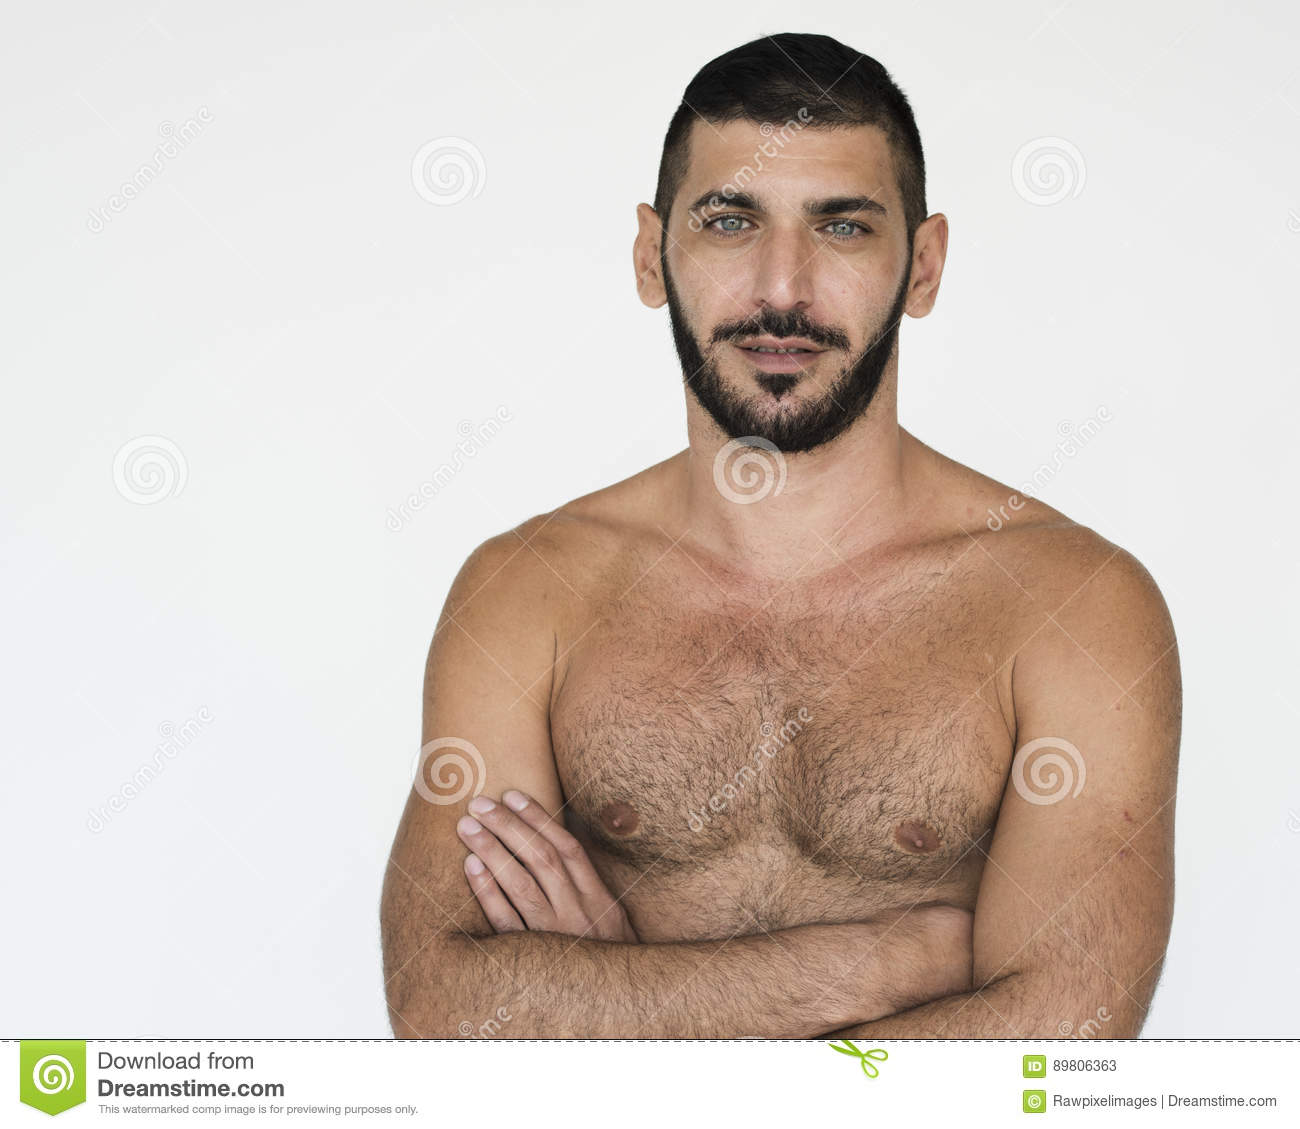 Hairy middle eastern man